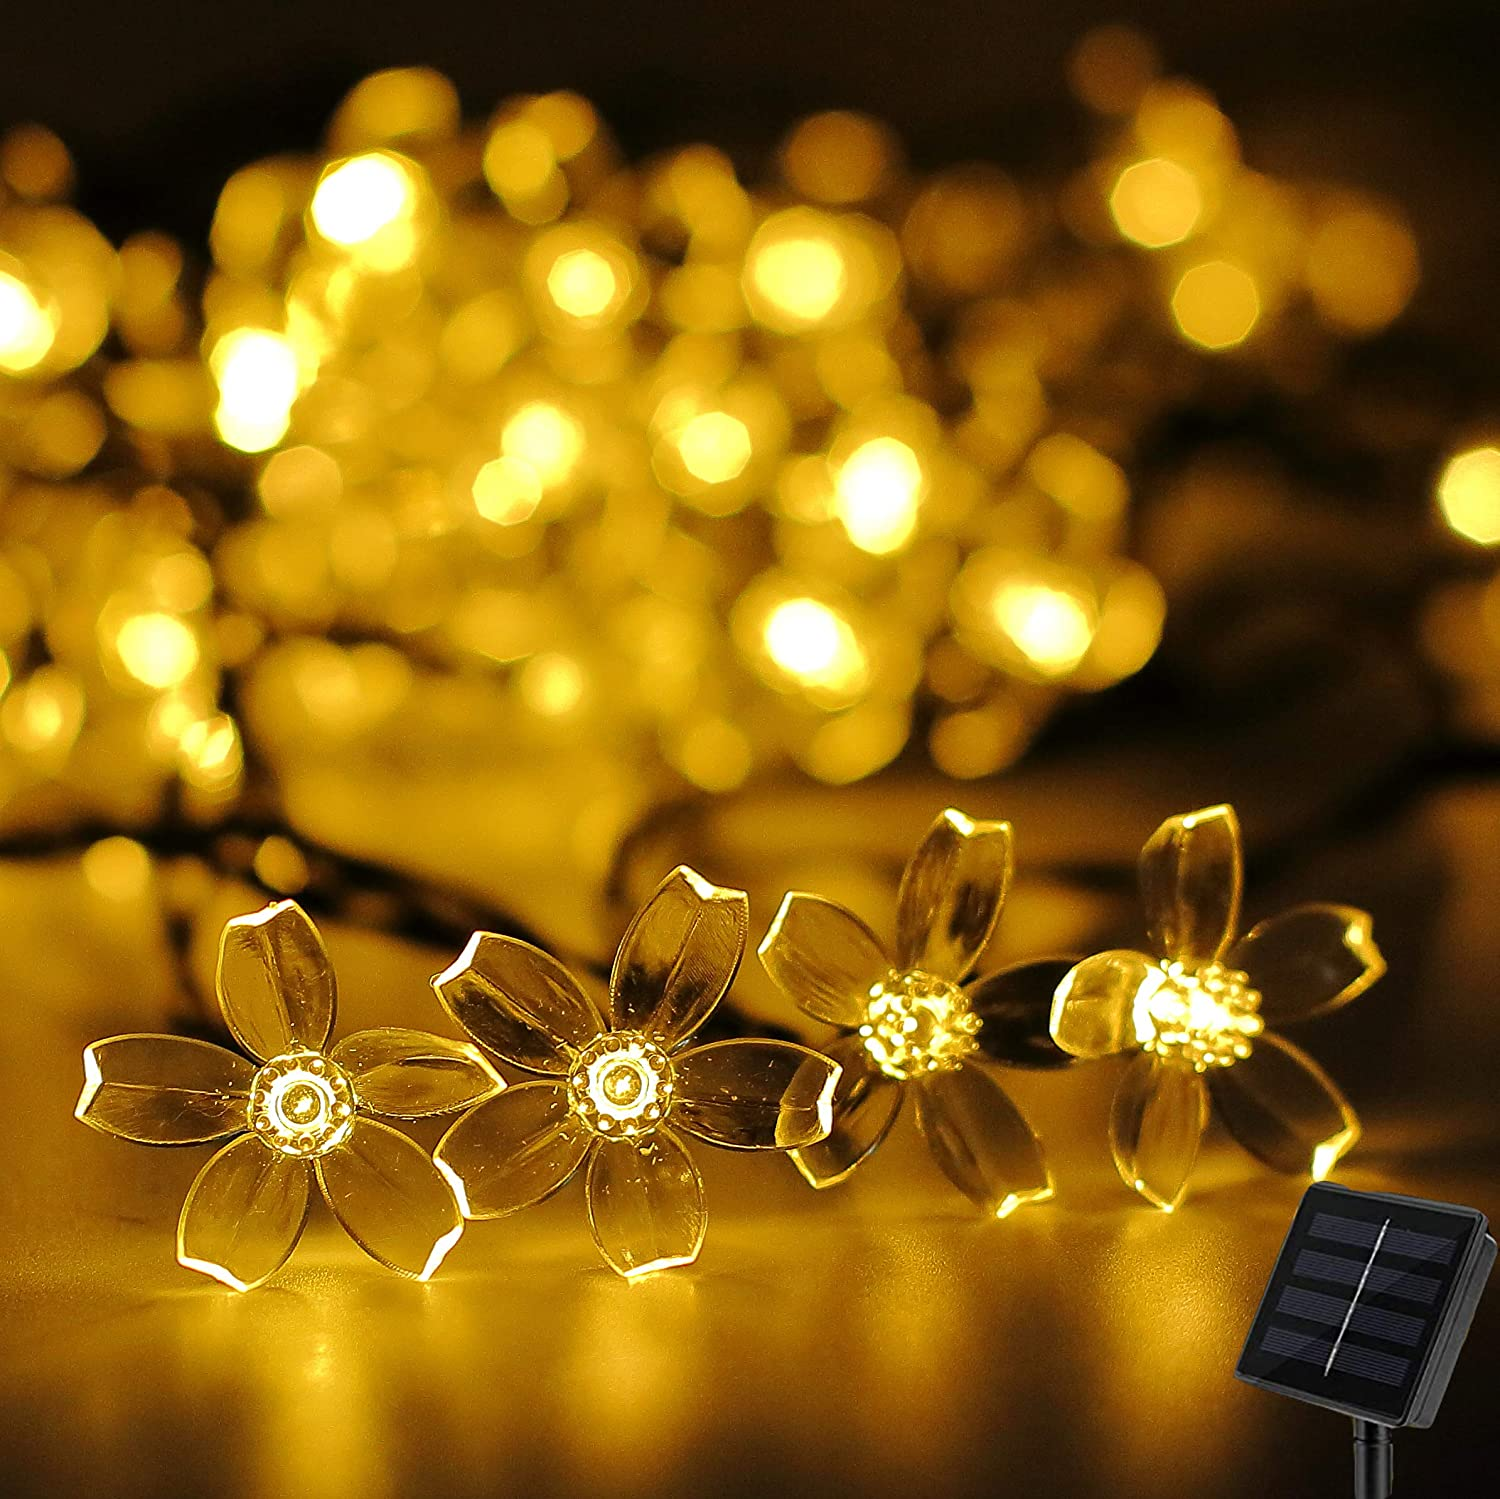 Darknessbreak Warm White Solar Flower String Lights Sakura lishts,23ft 50 LED Blossom Flower String Light Solar Power for Outdoor Garden,Lawn,Patio,Christmas Tree,Mother's Day Party Decorations.